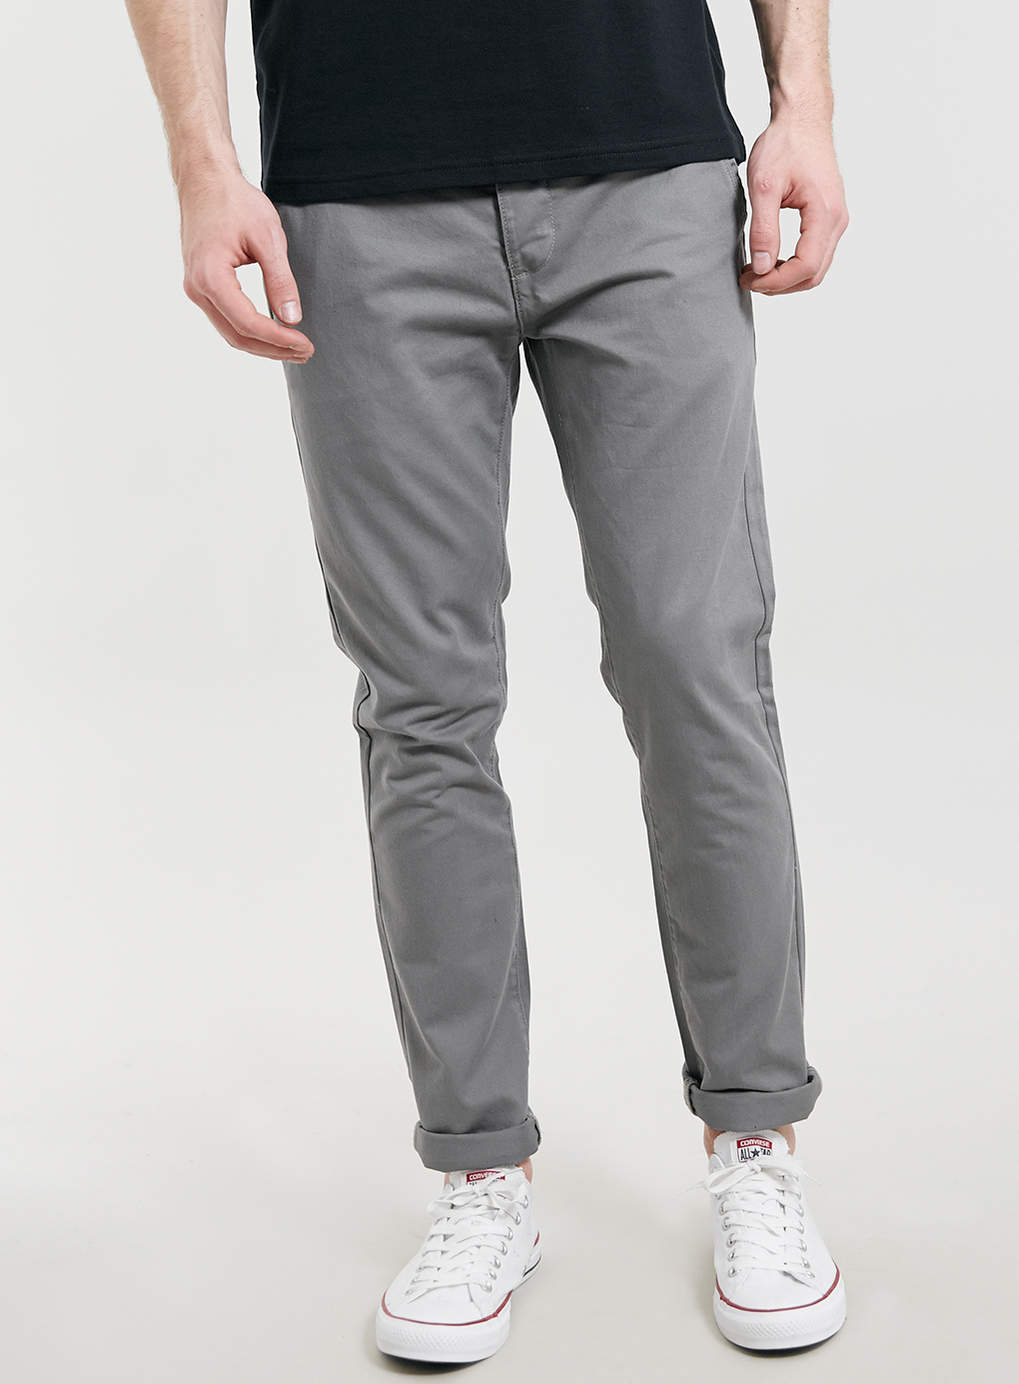 Mid Grey Skinny Chinos, now $40